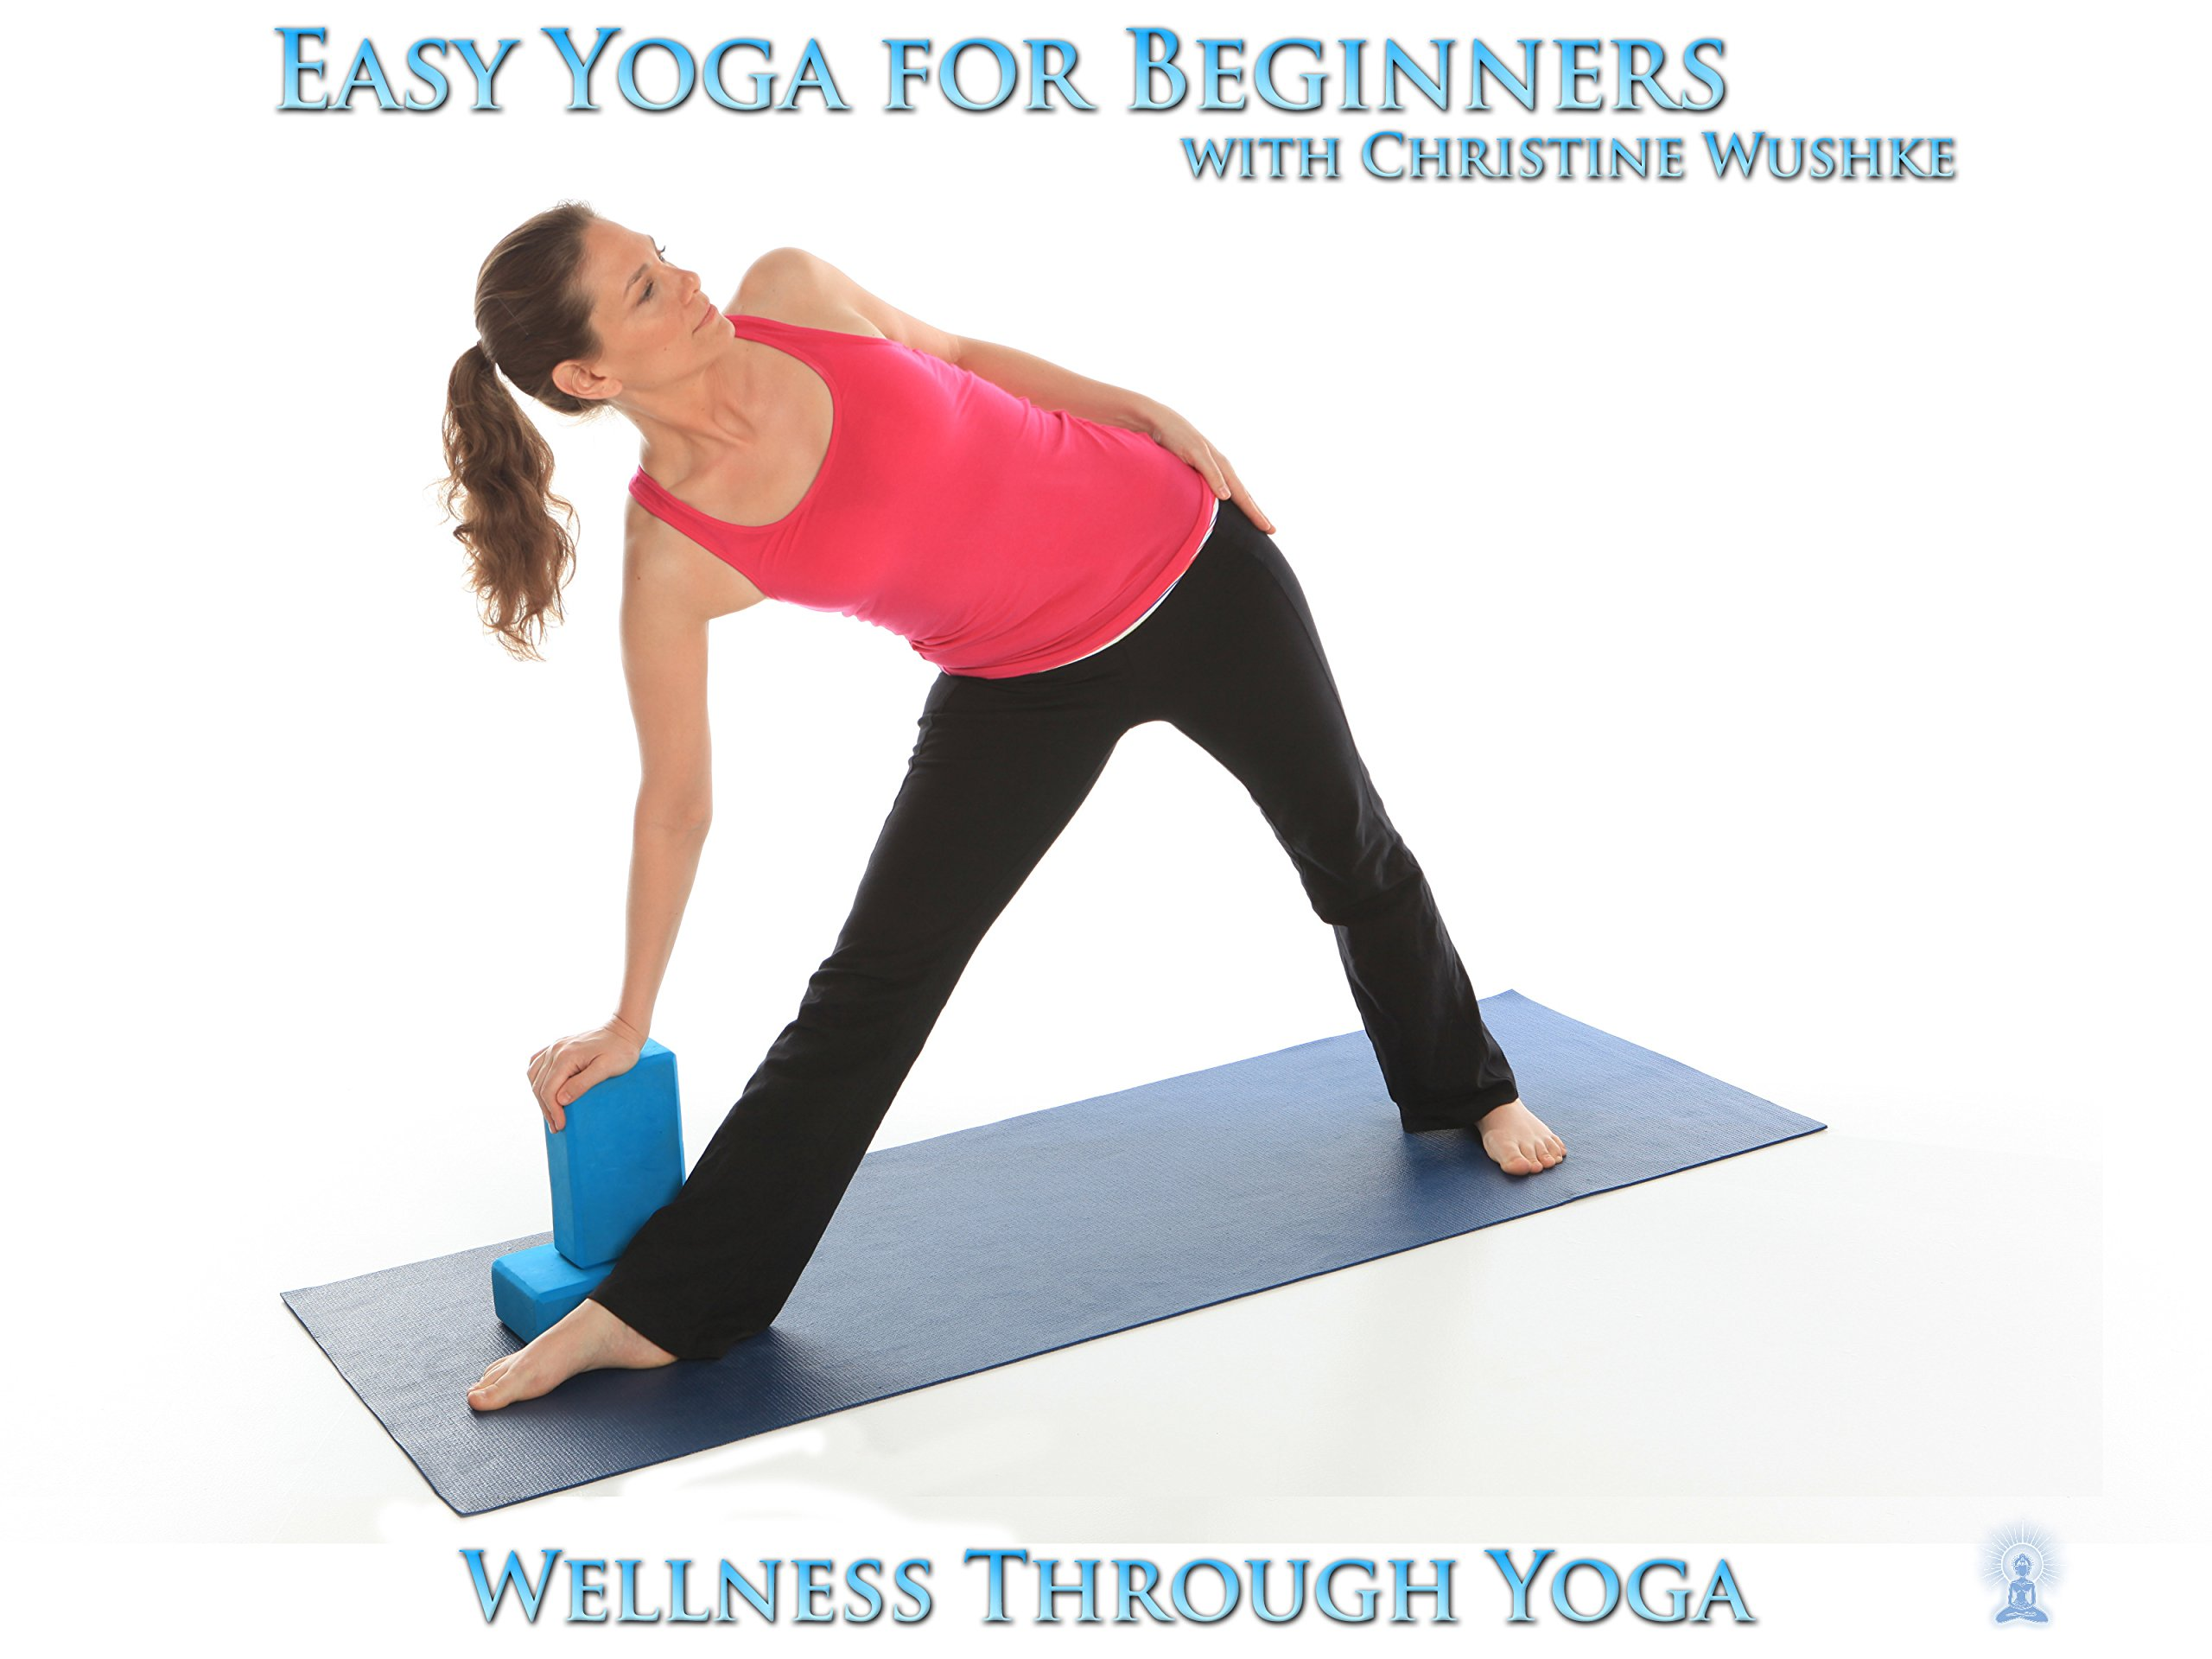 Amazon.com: Wellness Through Yoga: Christine Wushke, Vidura ...